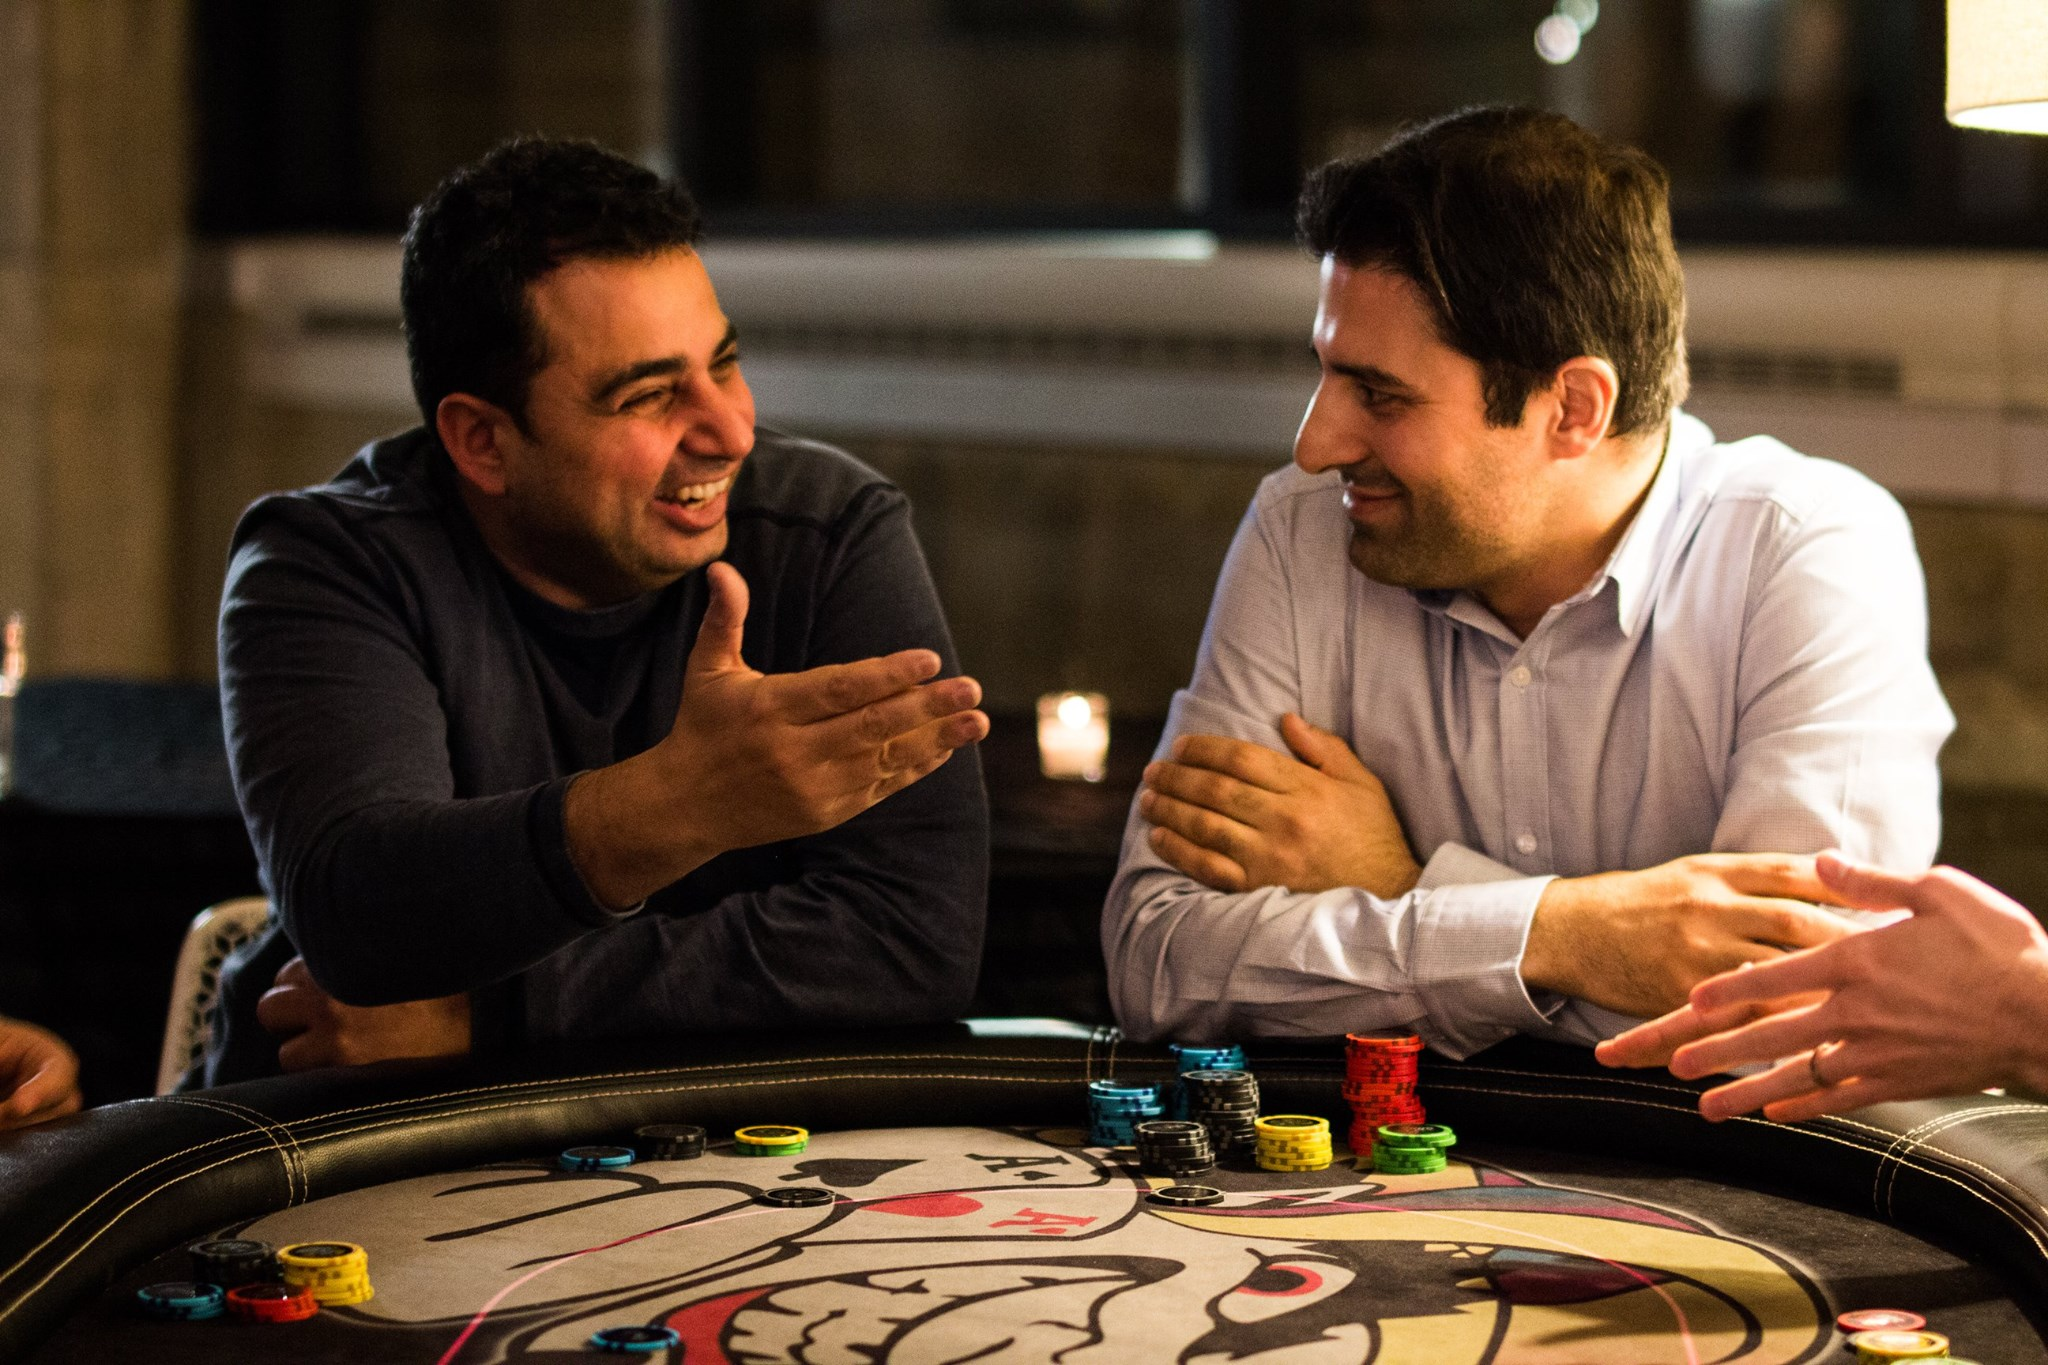 poker-night-2015.jpg